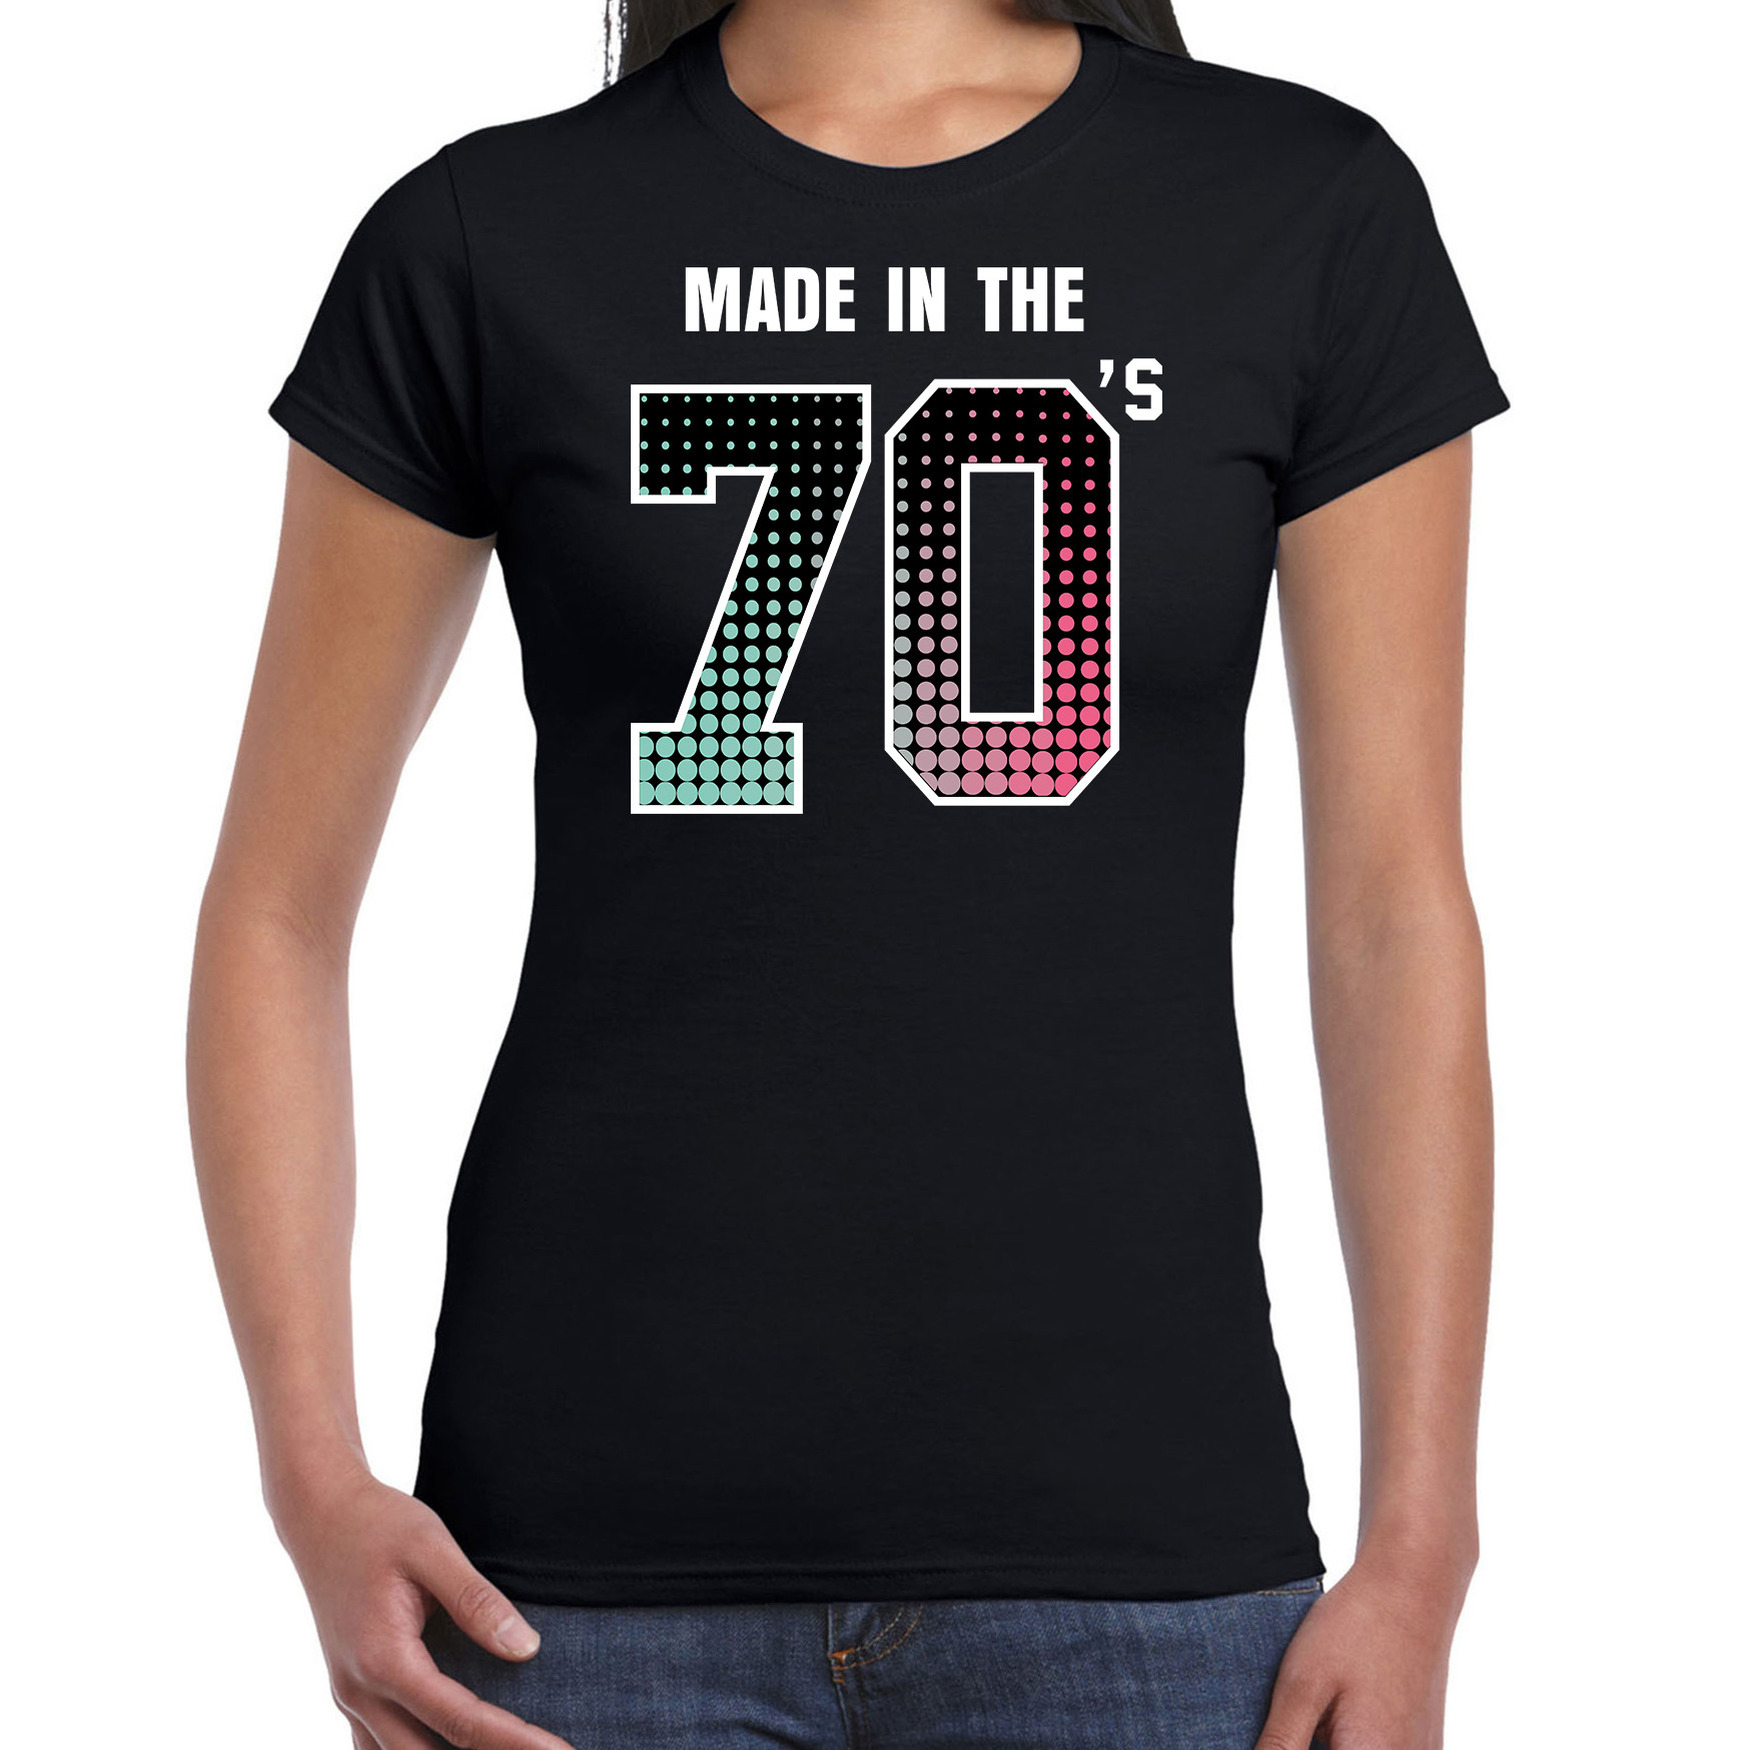 Feest shirt made in the 70s t-shirt - outfit zwart voor dames